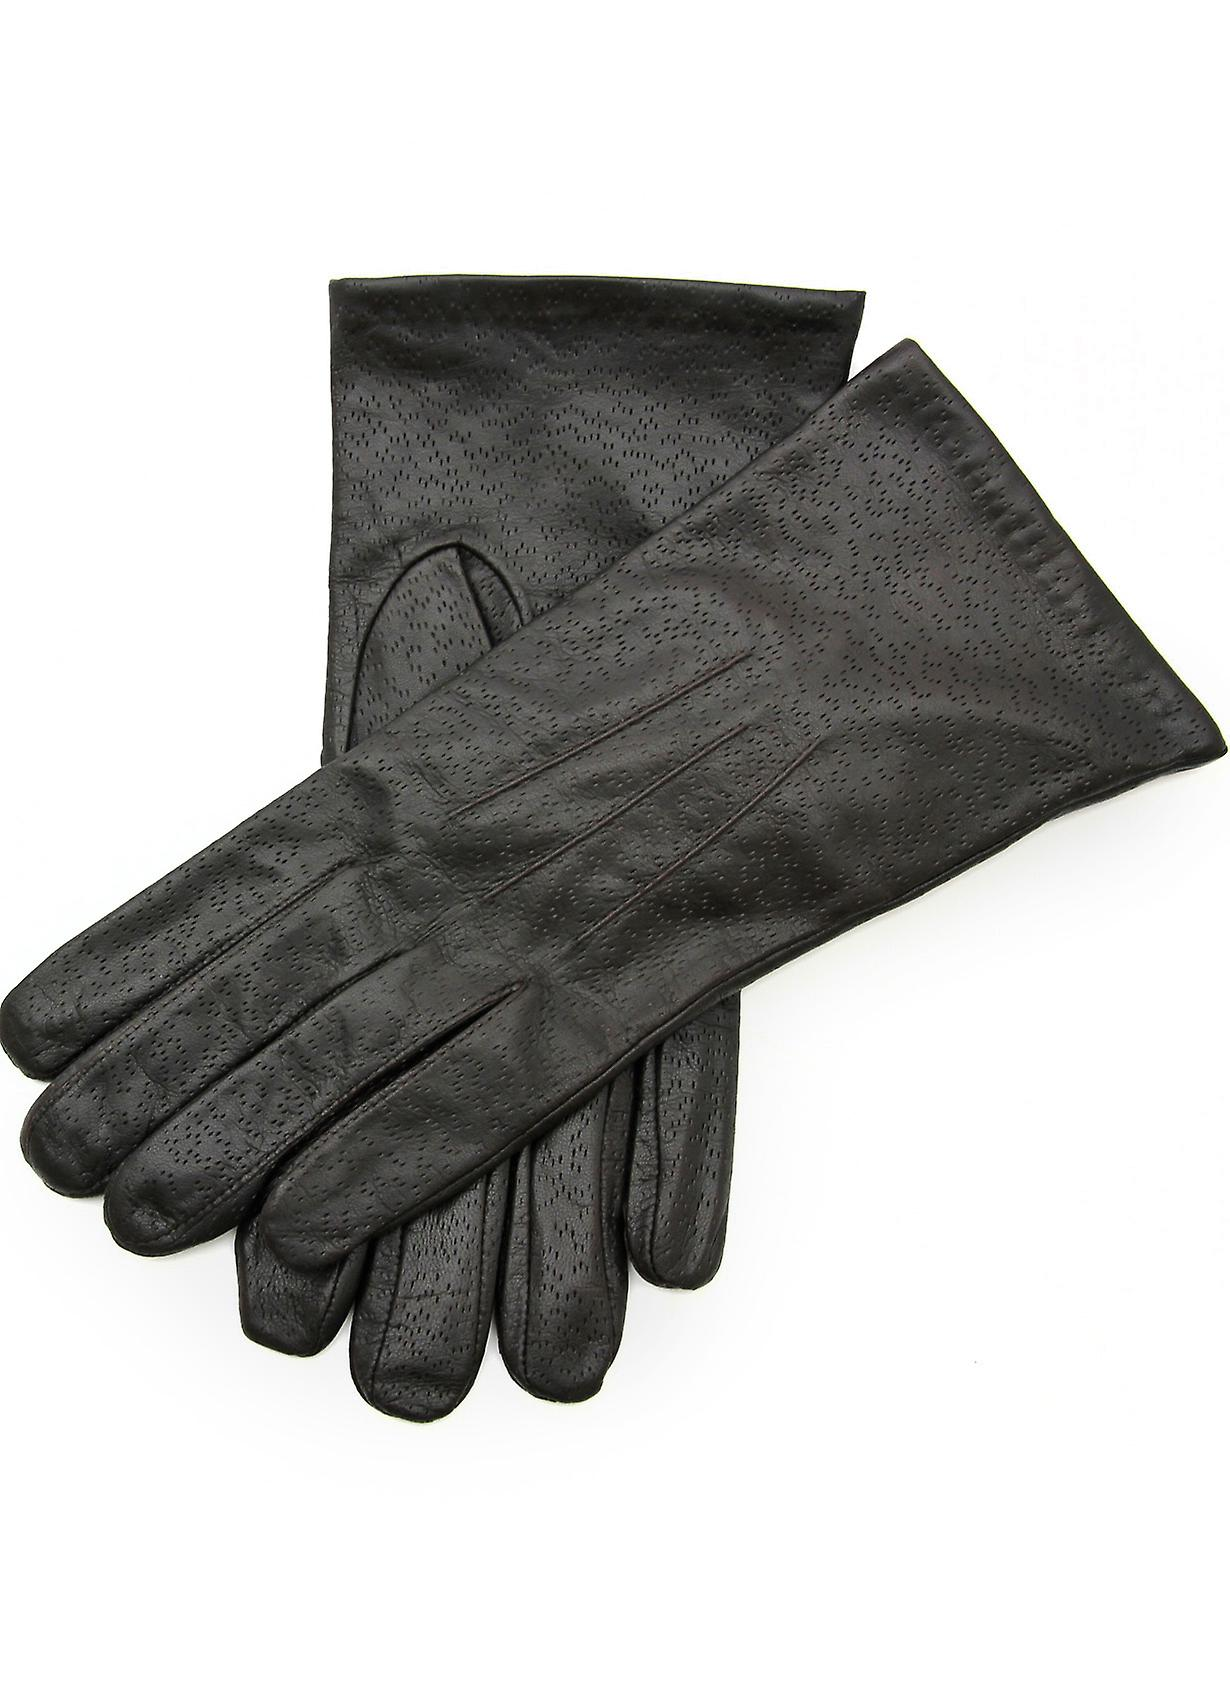 Mia V Classic Leather Gloves in Brown